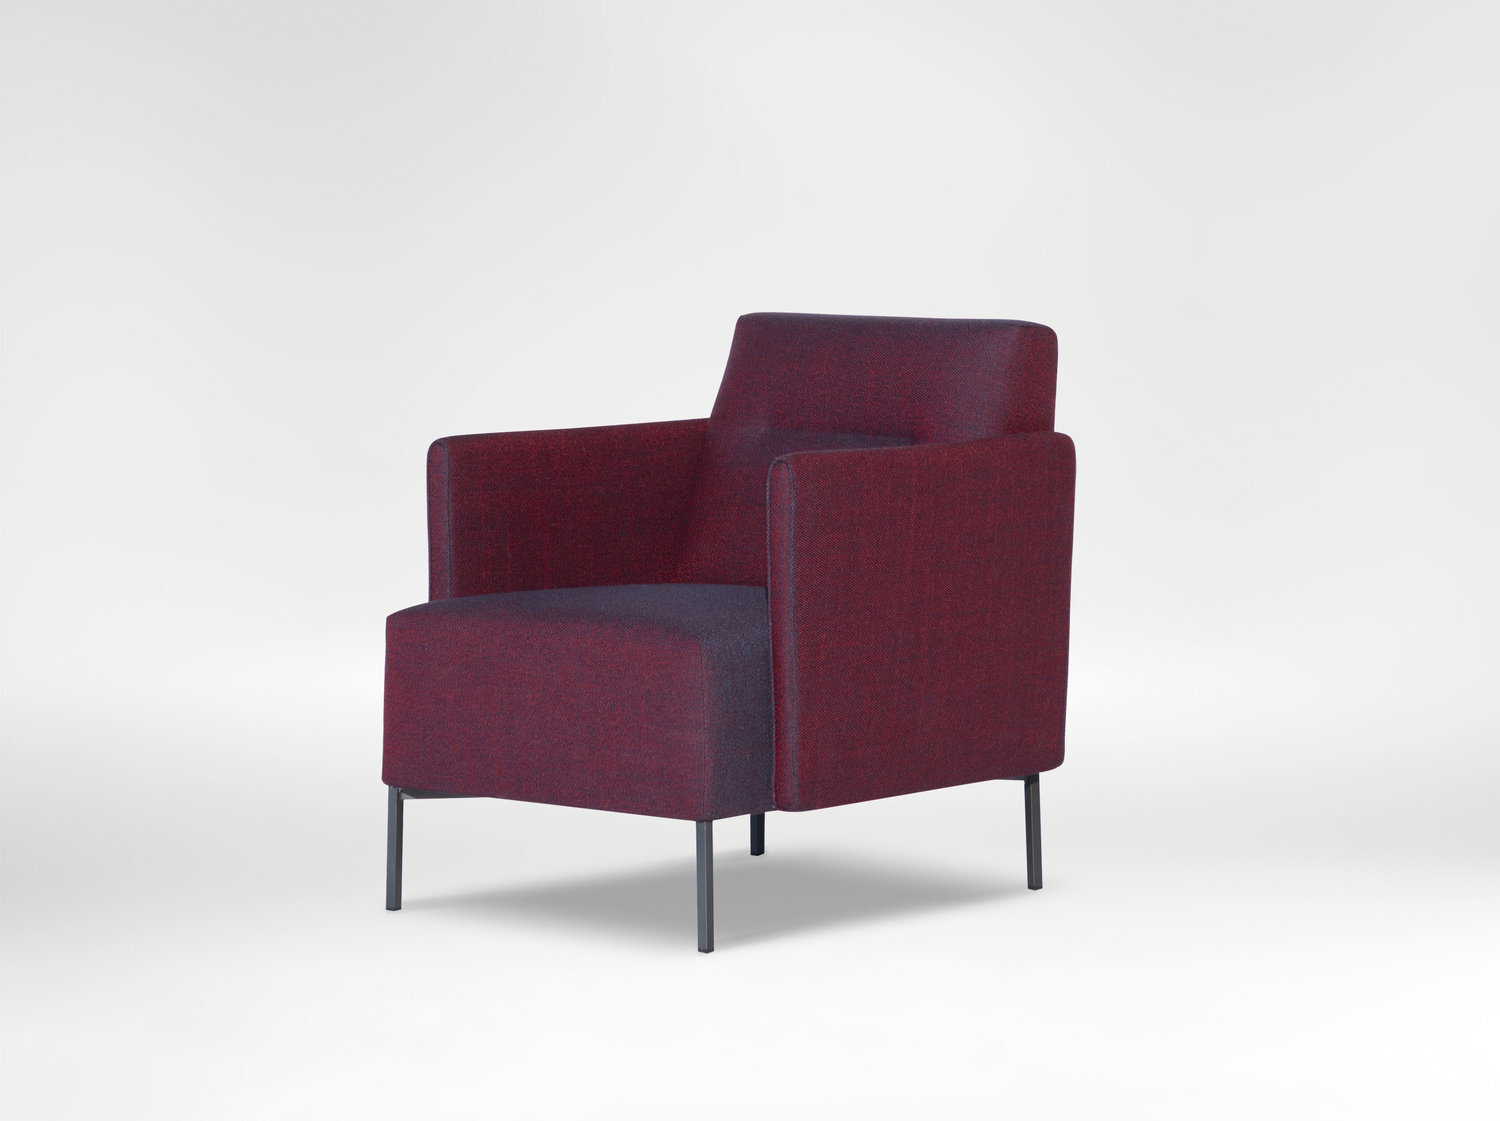 ease chair - Sleek arms and a refined base, Ease chair is polished and exquisite.